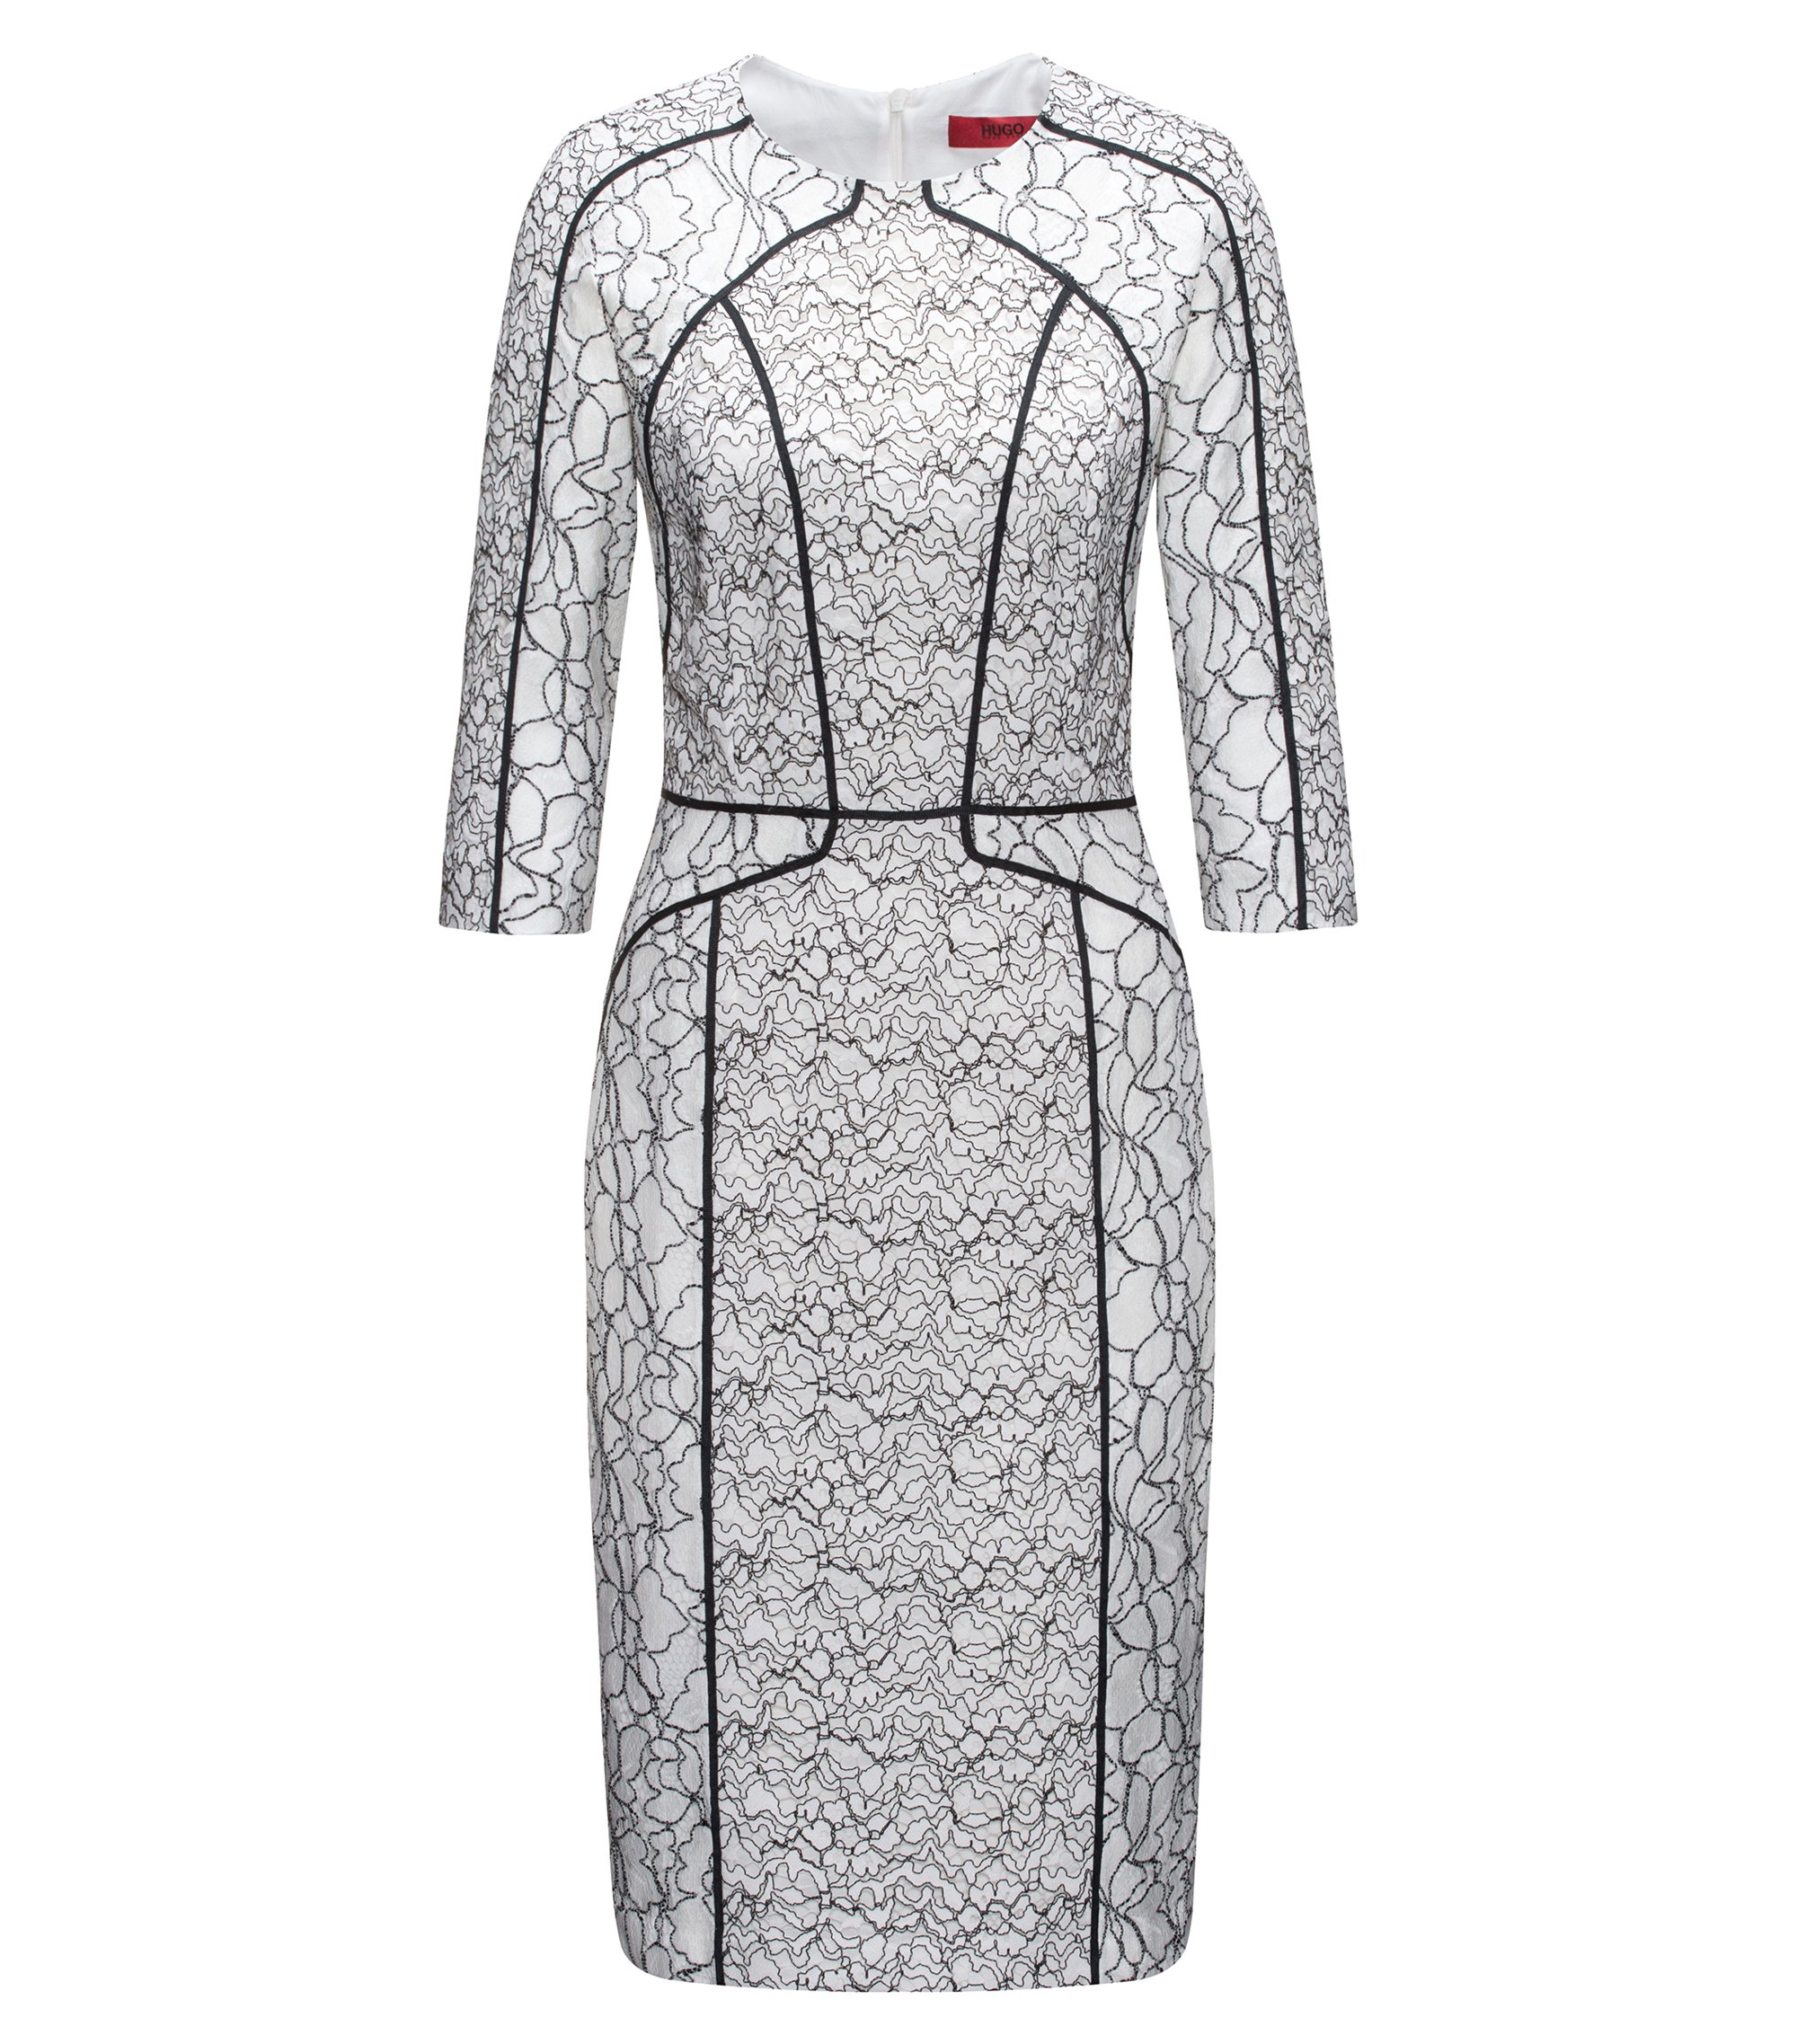 Long-sleeved dress in patched lace with contrast piping, Patterned